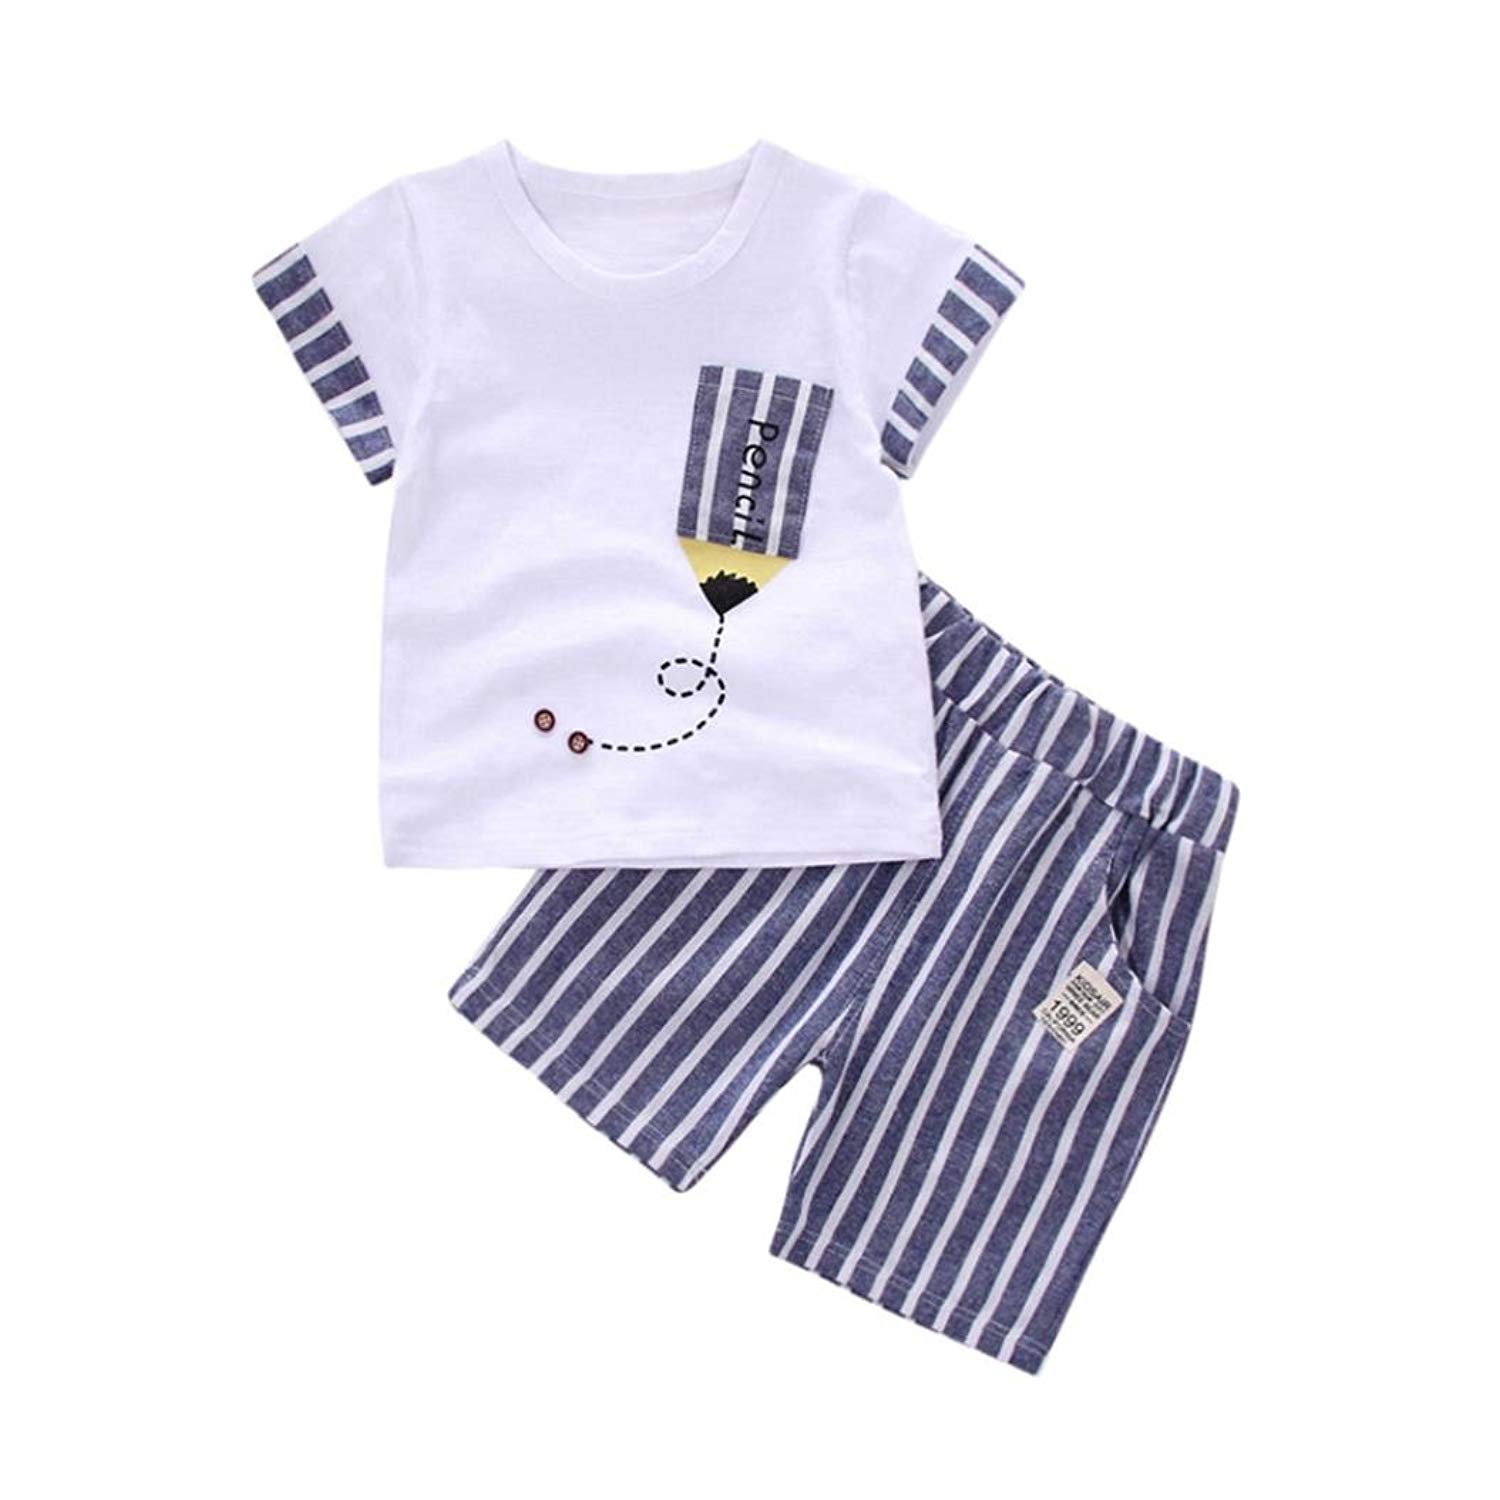 Apparel Goodtrade8 Toddler Baby Boy Pocket T-Shirt Tops Pants Infant Short Sleeve Outfit Clothes Set Green